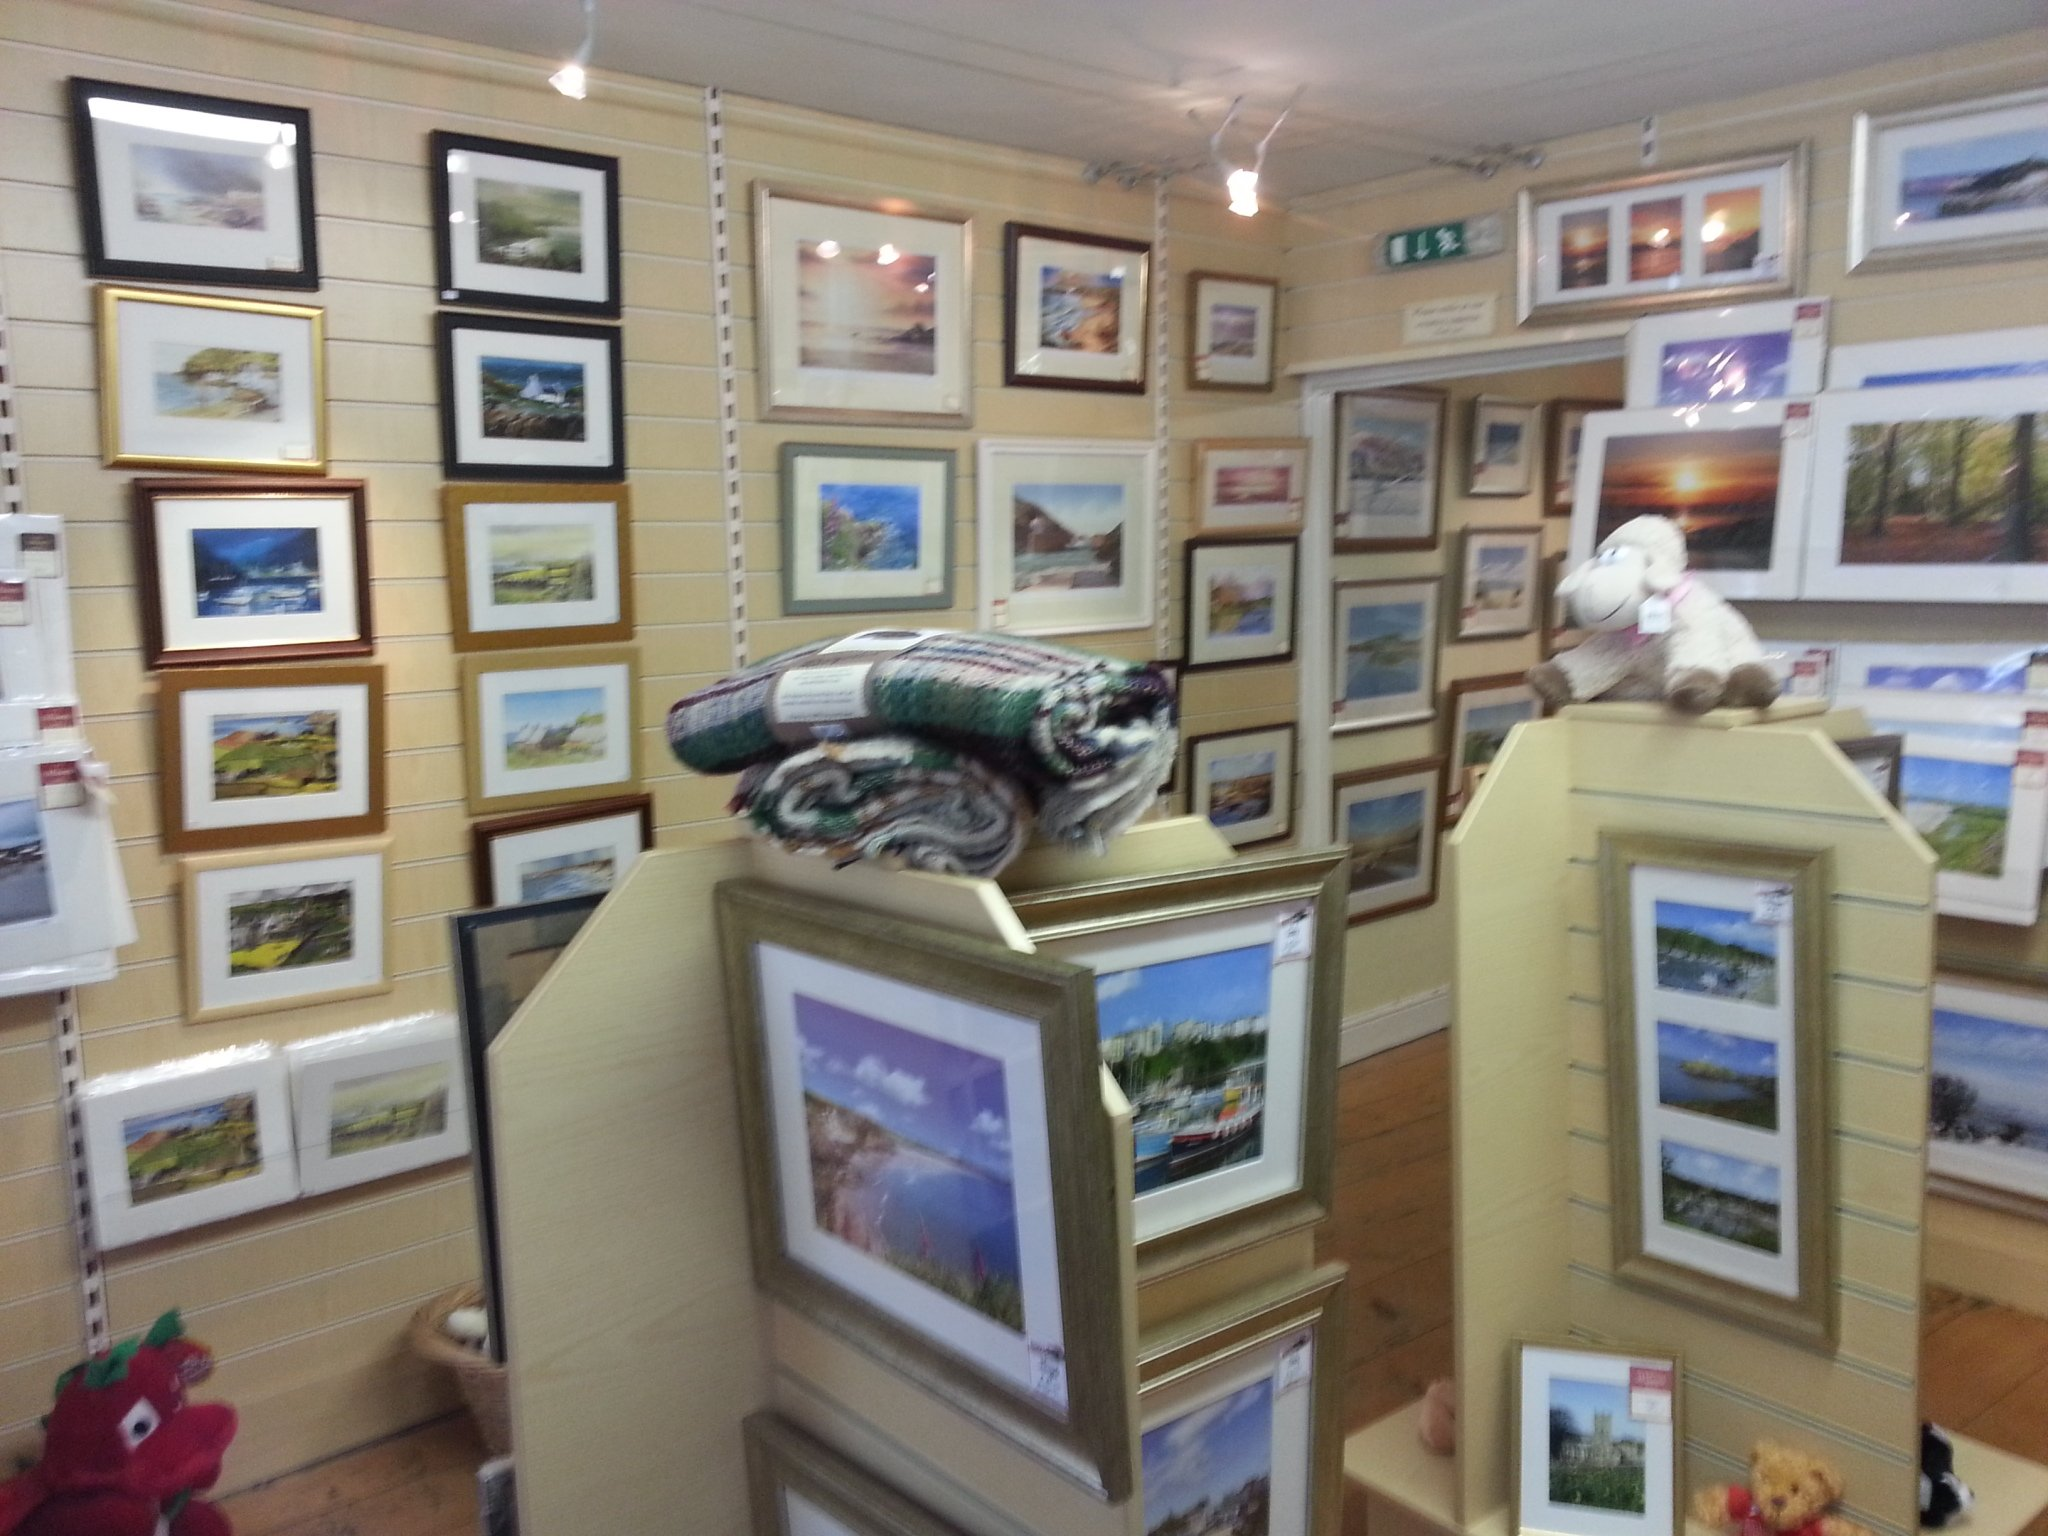 Gallery, Haverfordwest, Pembrokeshire